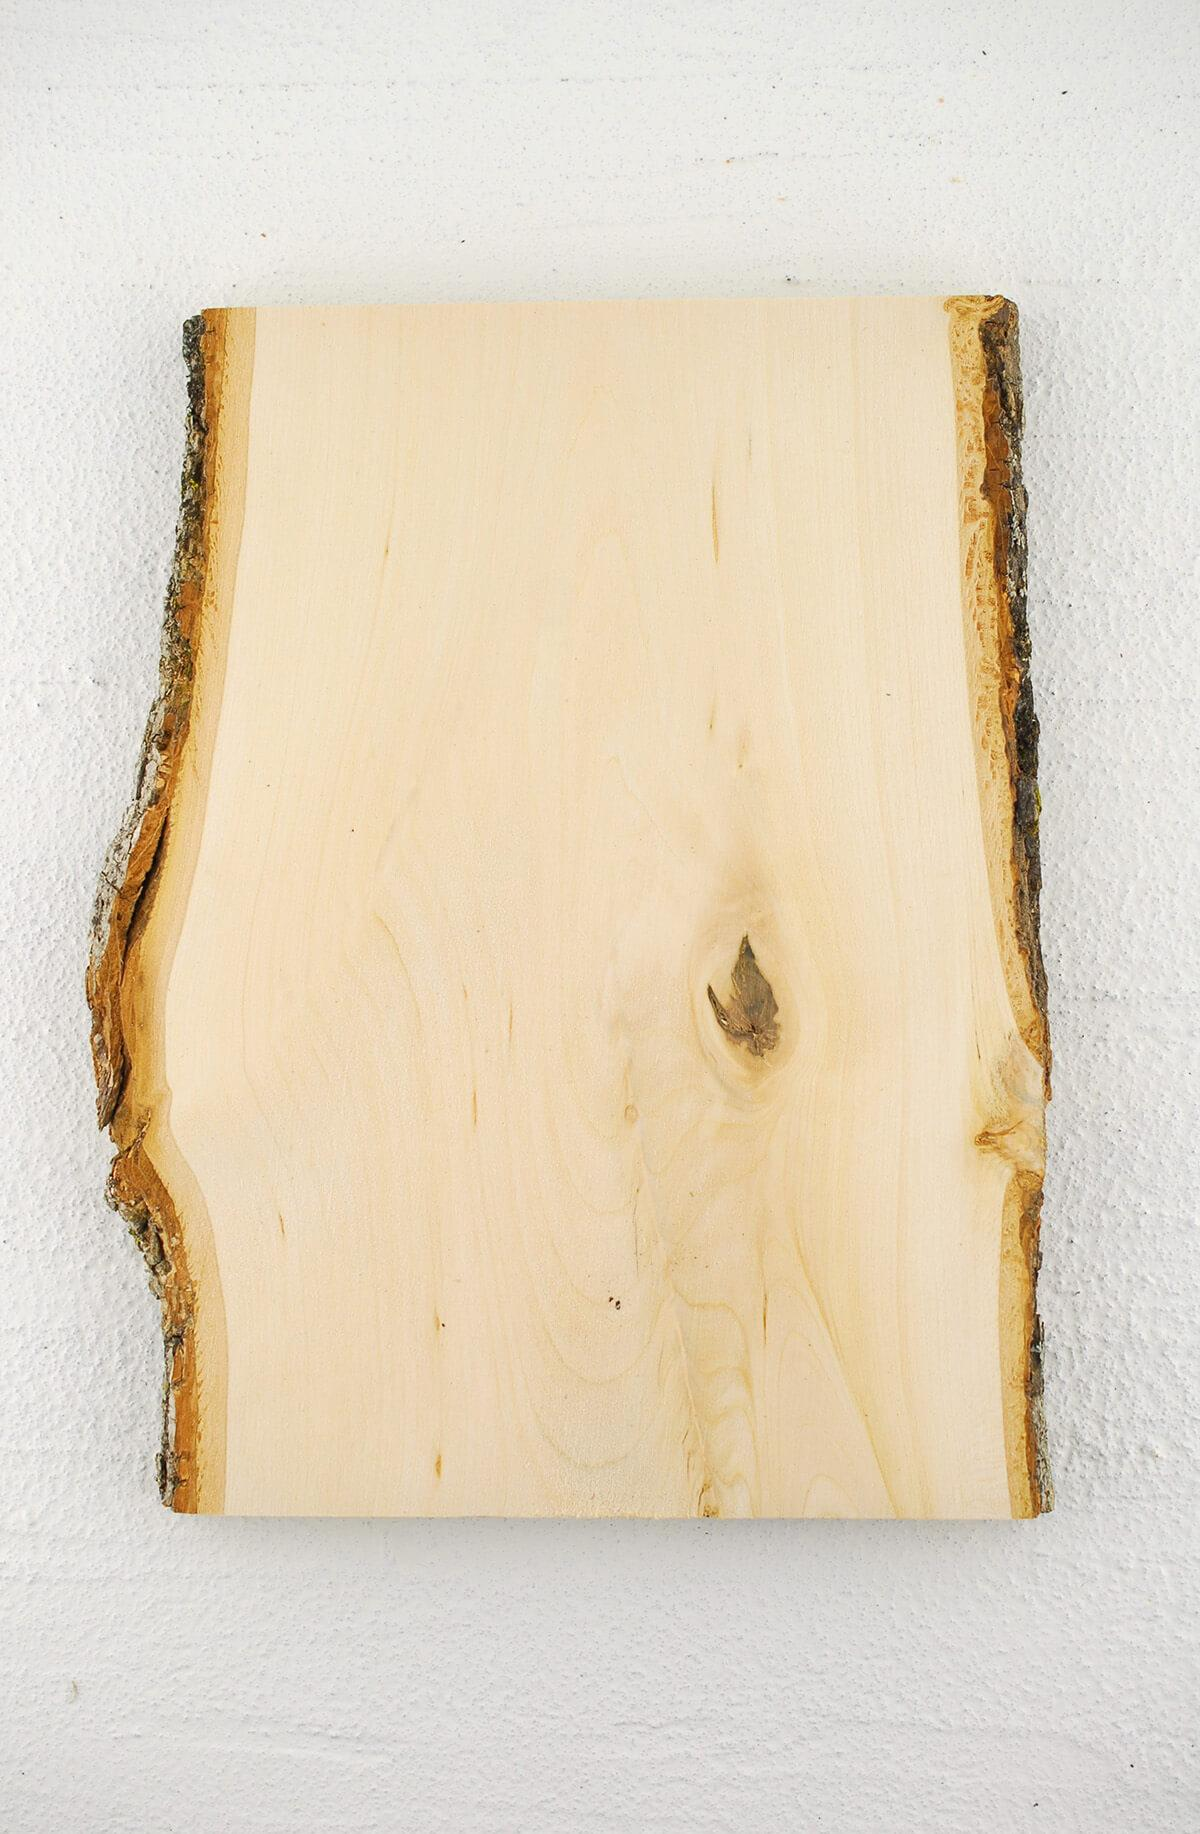 "Wood Plank 11"" X 8""  with Bark"